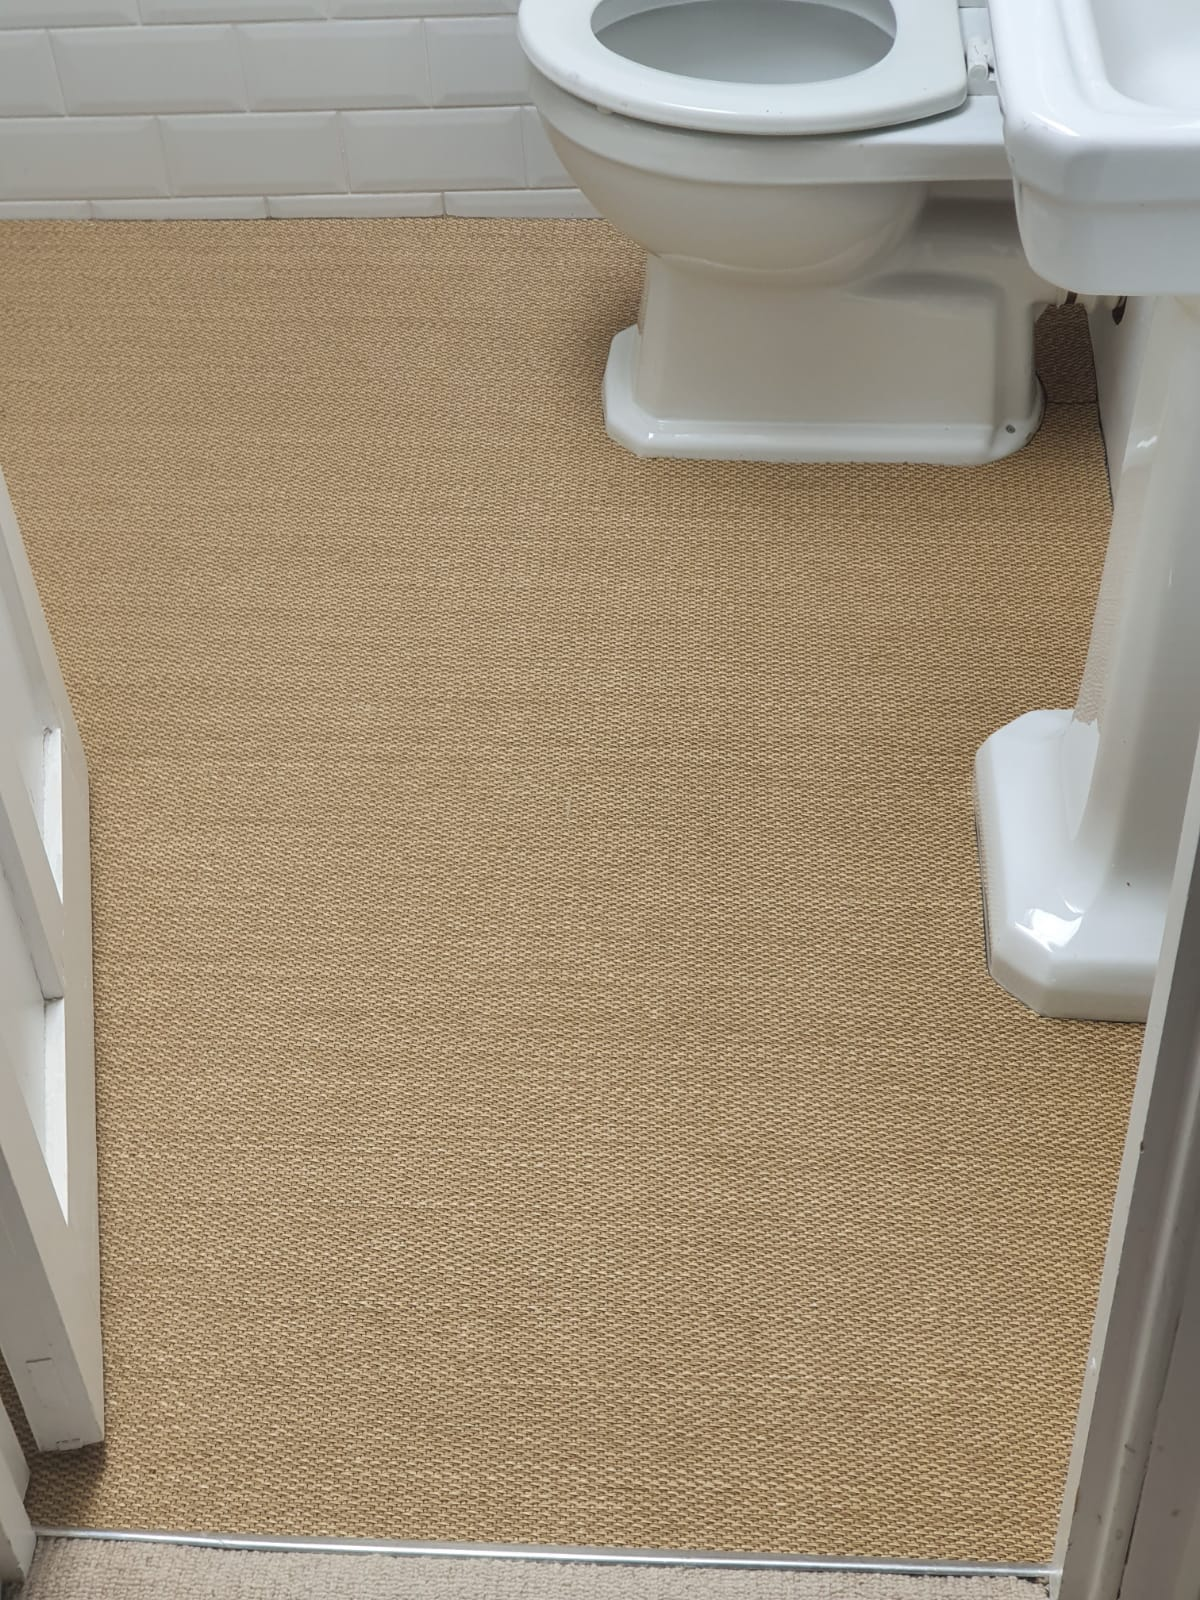 Clarendon Carpets Harrow Beige Carpet in Chelsea 2